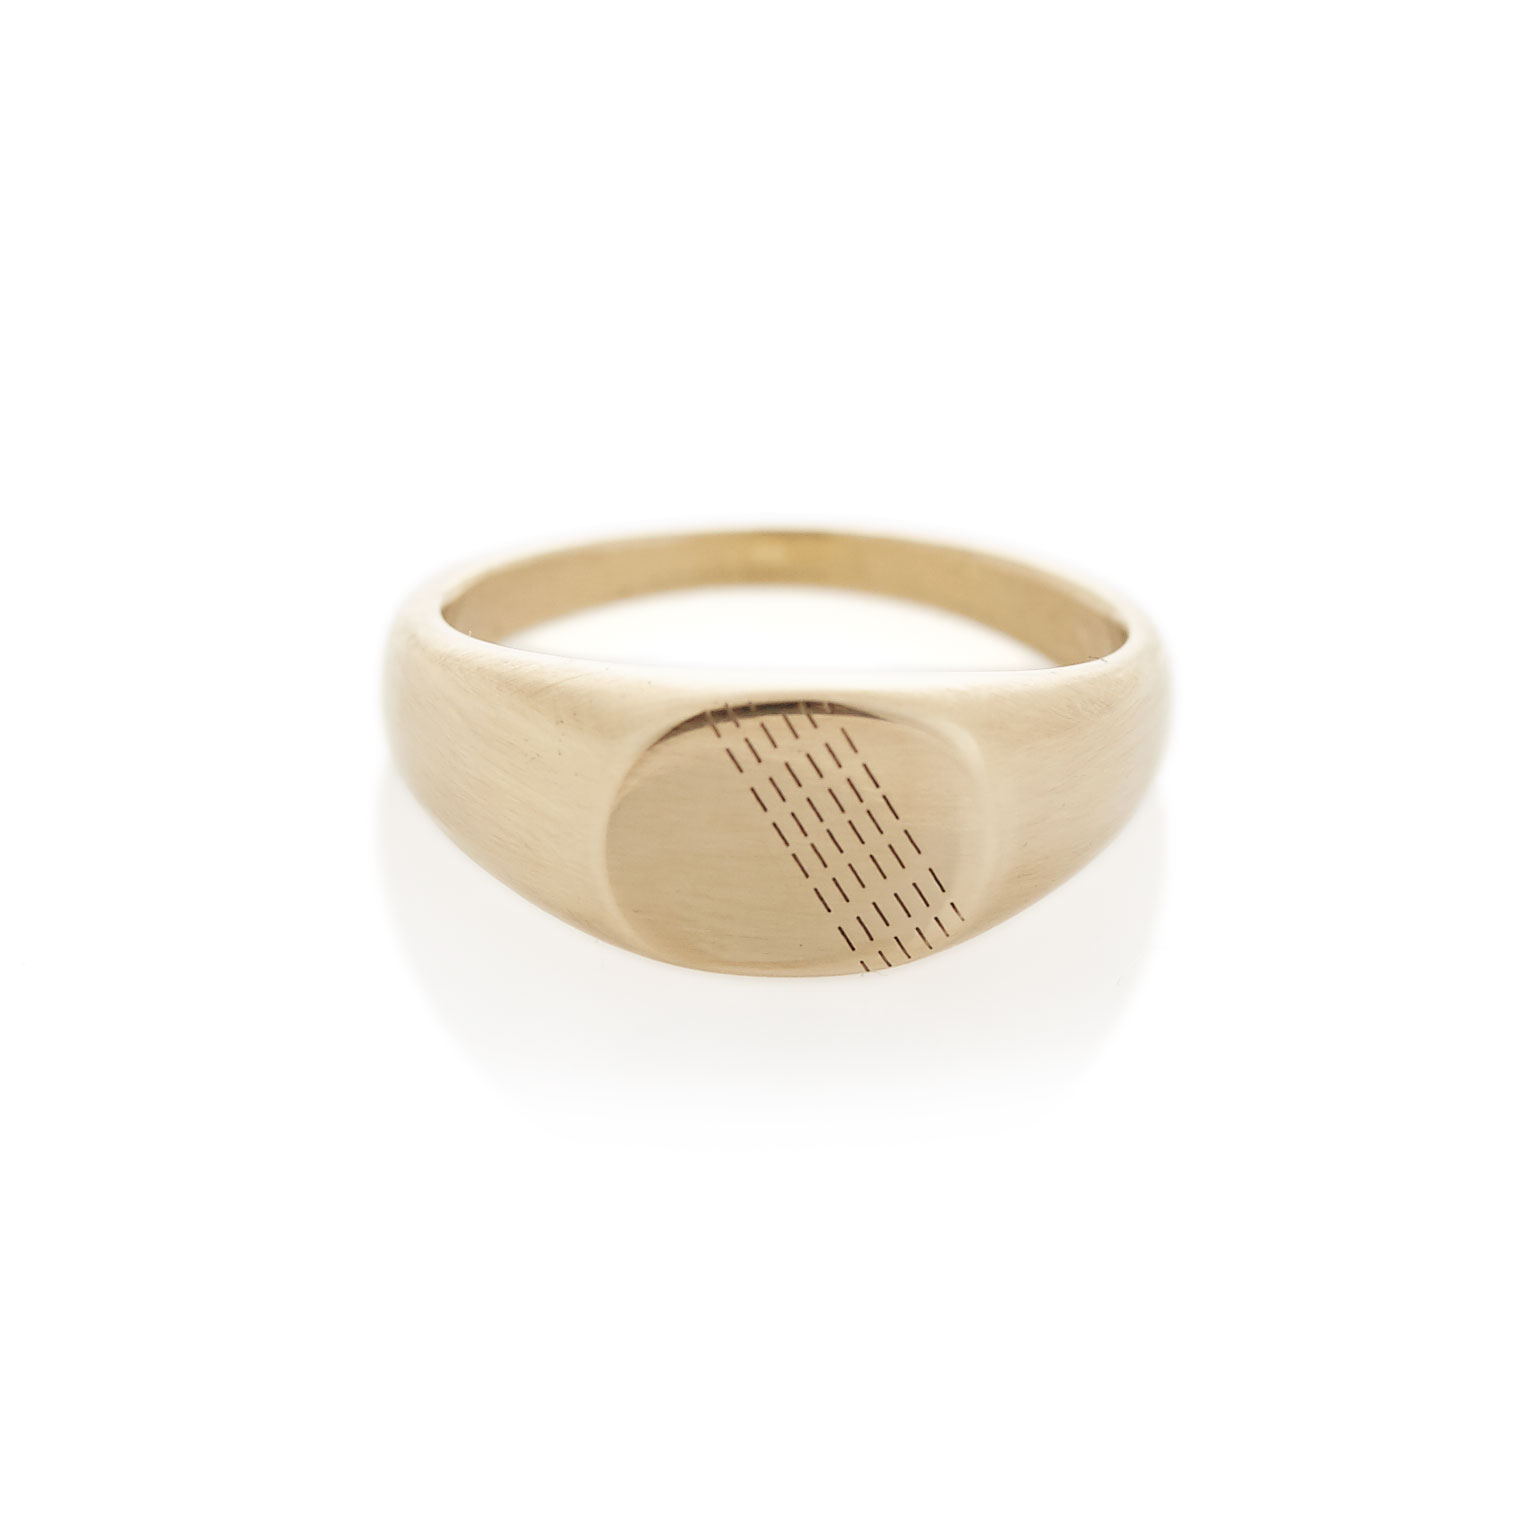 A traditional oval shaped signet ring in solid 9ct yellow gold with diagonal engraved details. The face size is approximately 9mm x 7mm. Available with either a brushed or polished finish. 